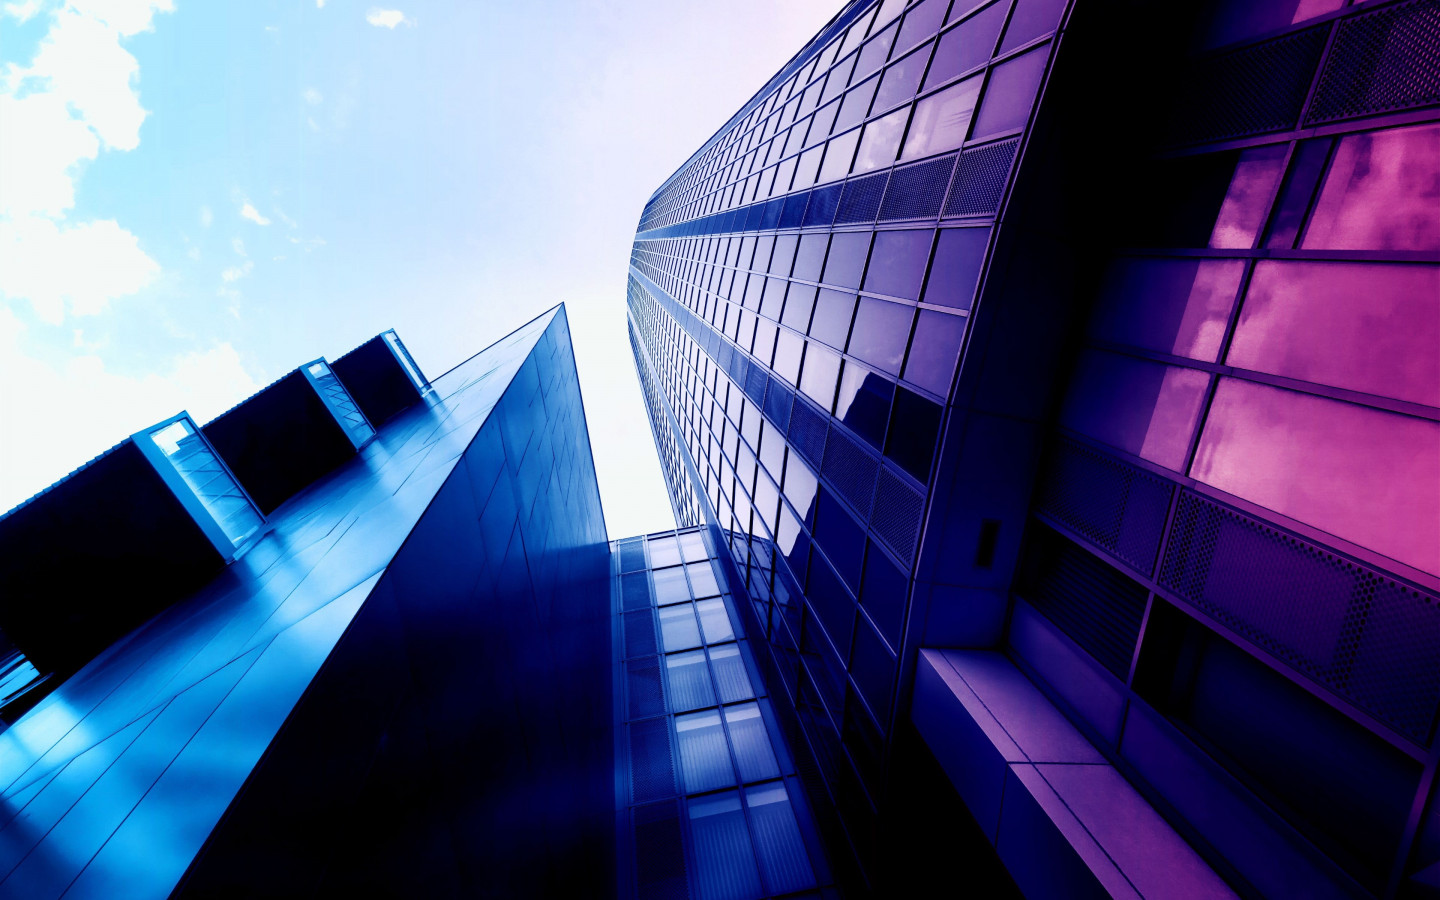 Glass building design wallpaper 1440x900